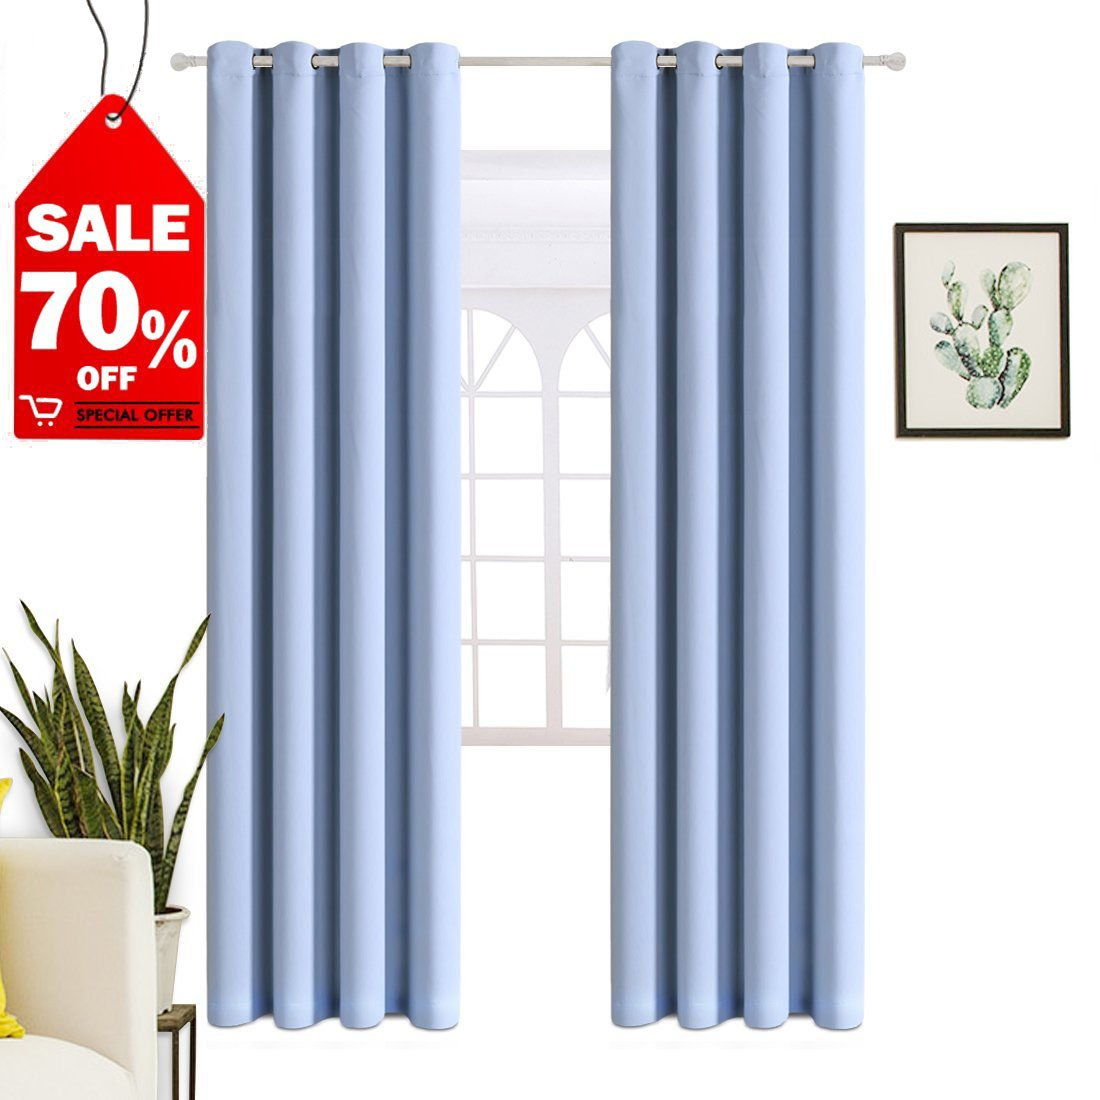 WarmHarbor Thermal Insulated Blackout Curtains ❤️for Living Room and Bedroom, ❤️2 Panels (52x63 in, Beige)